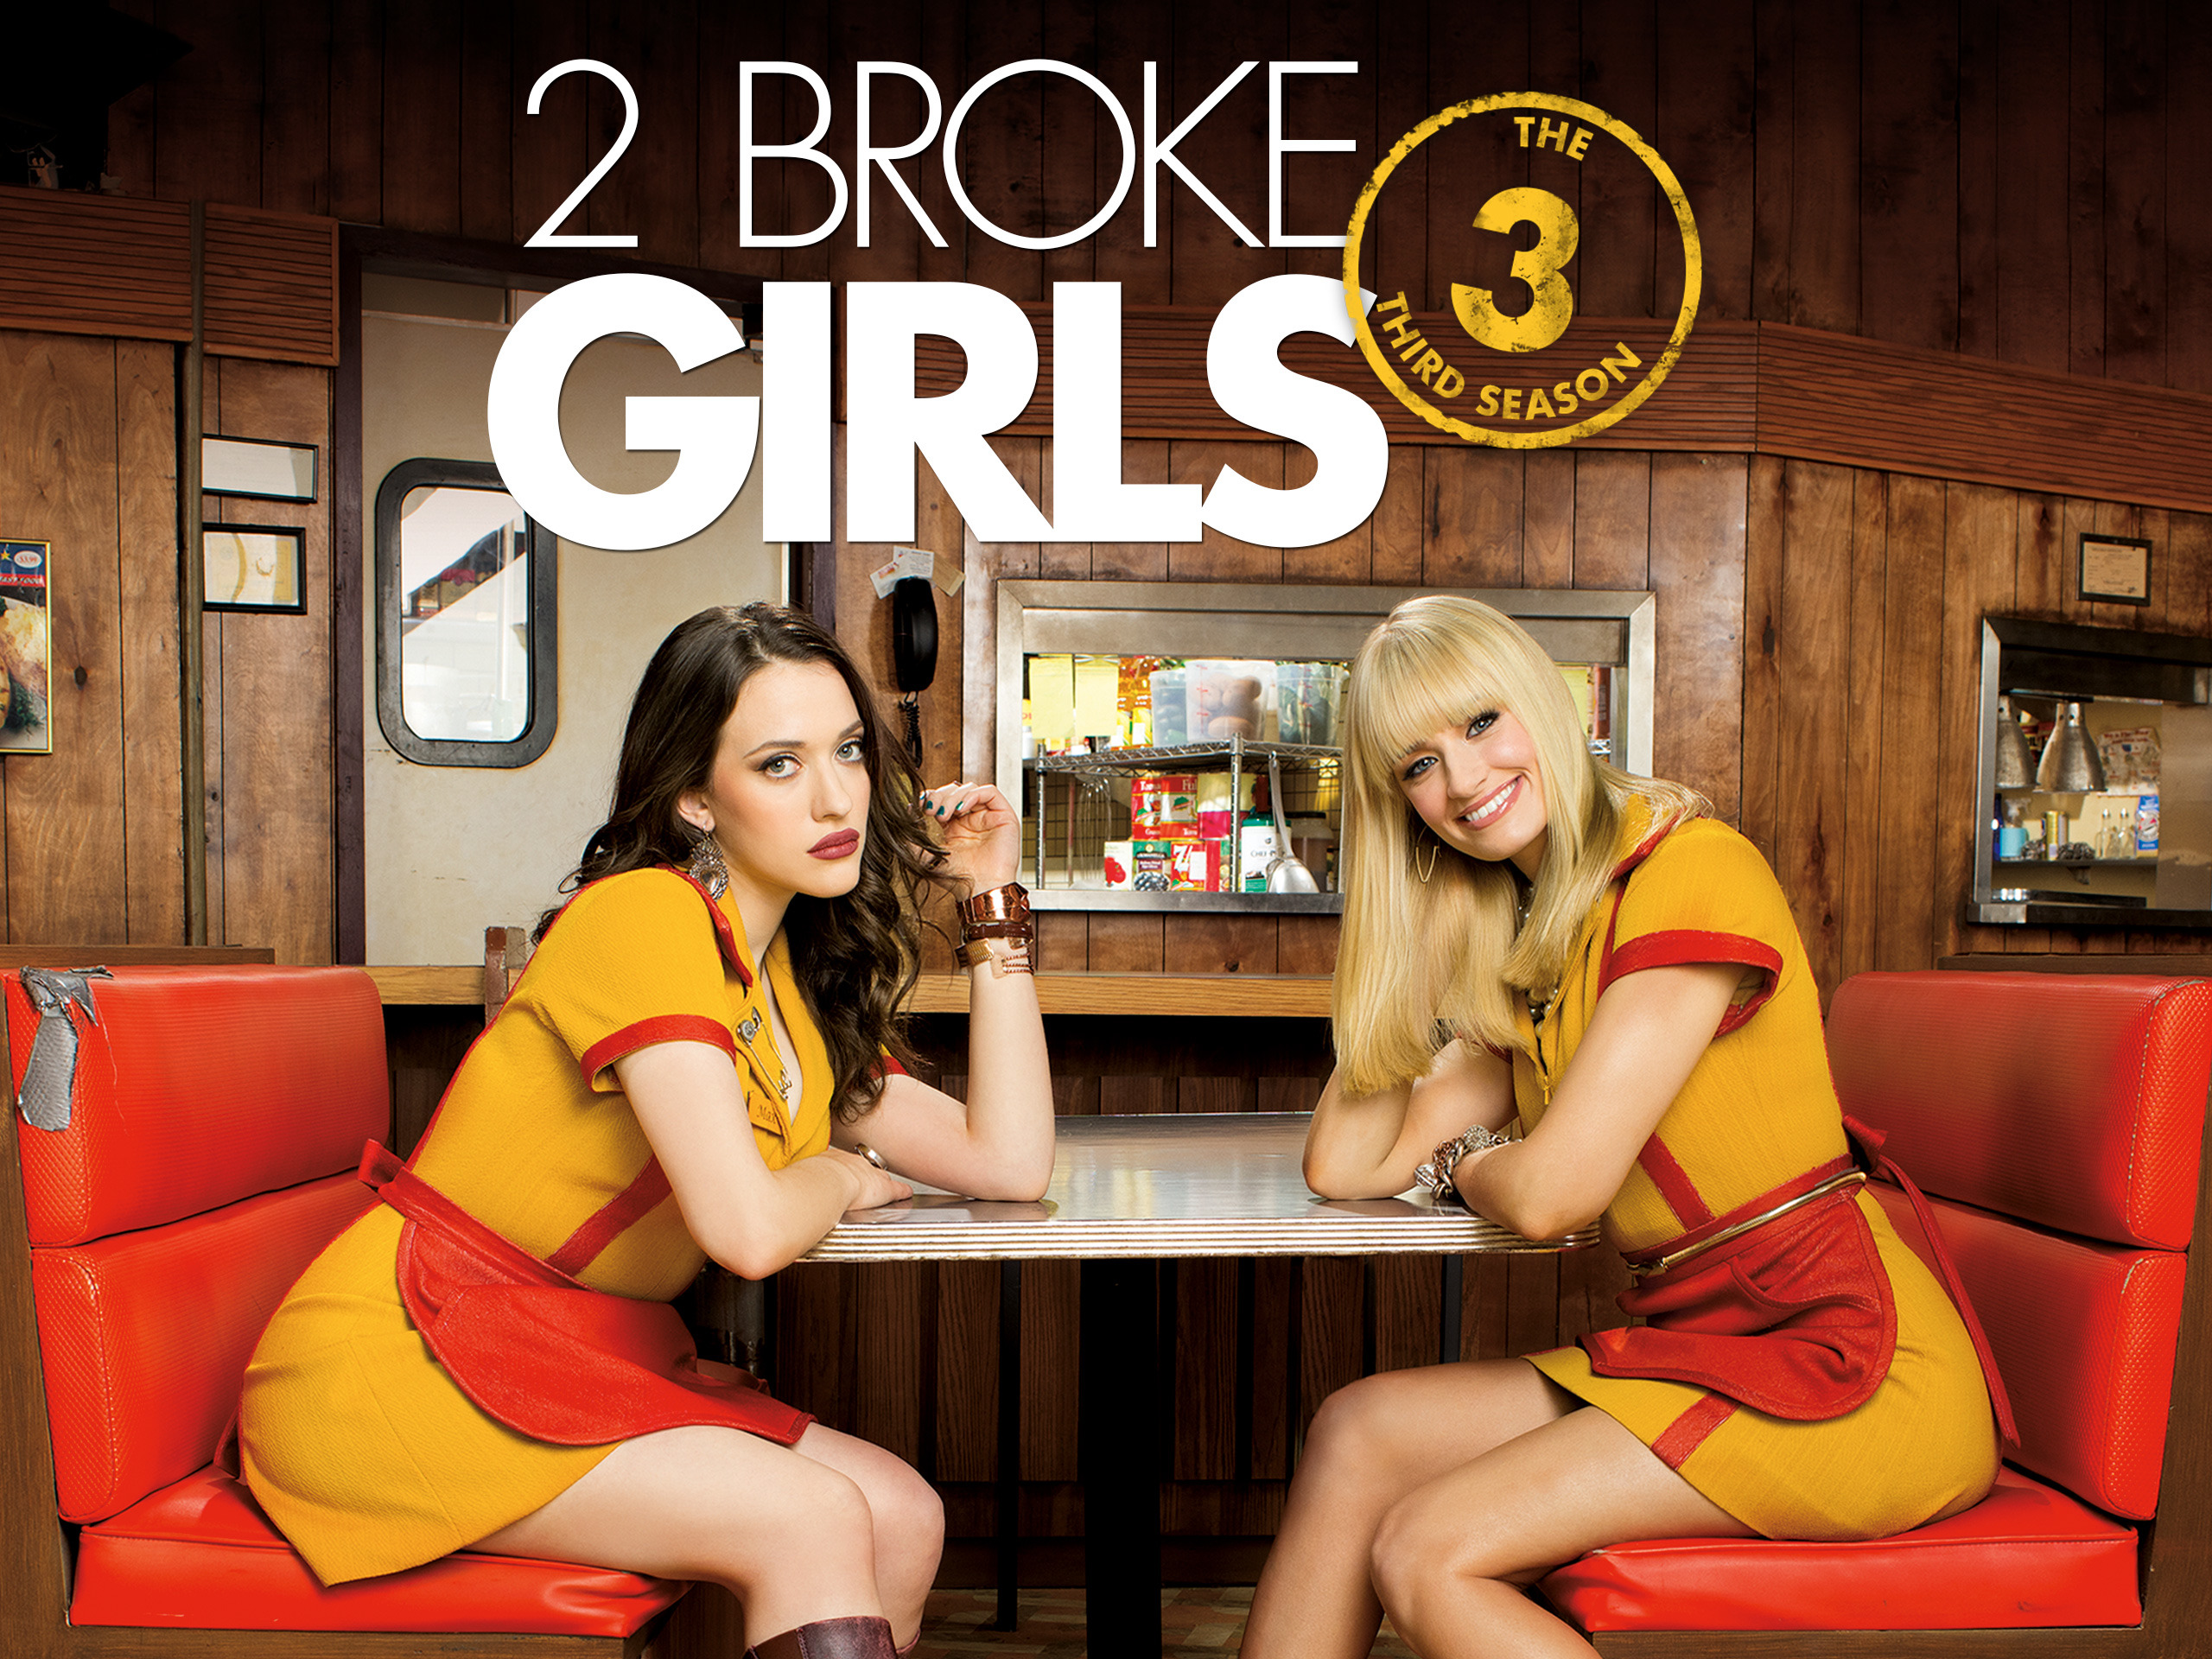 Prime Video 2 Broke Girls The Complete First Season